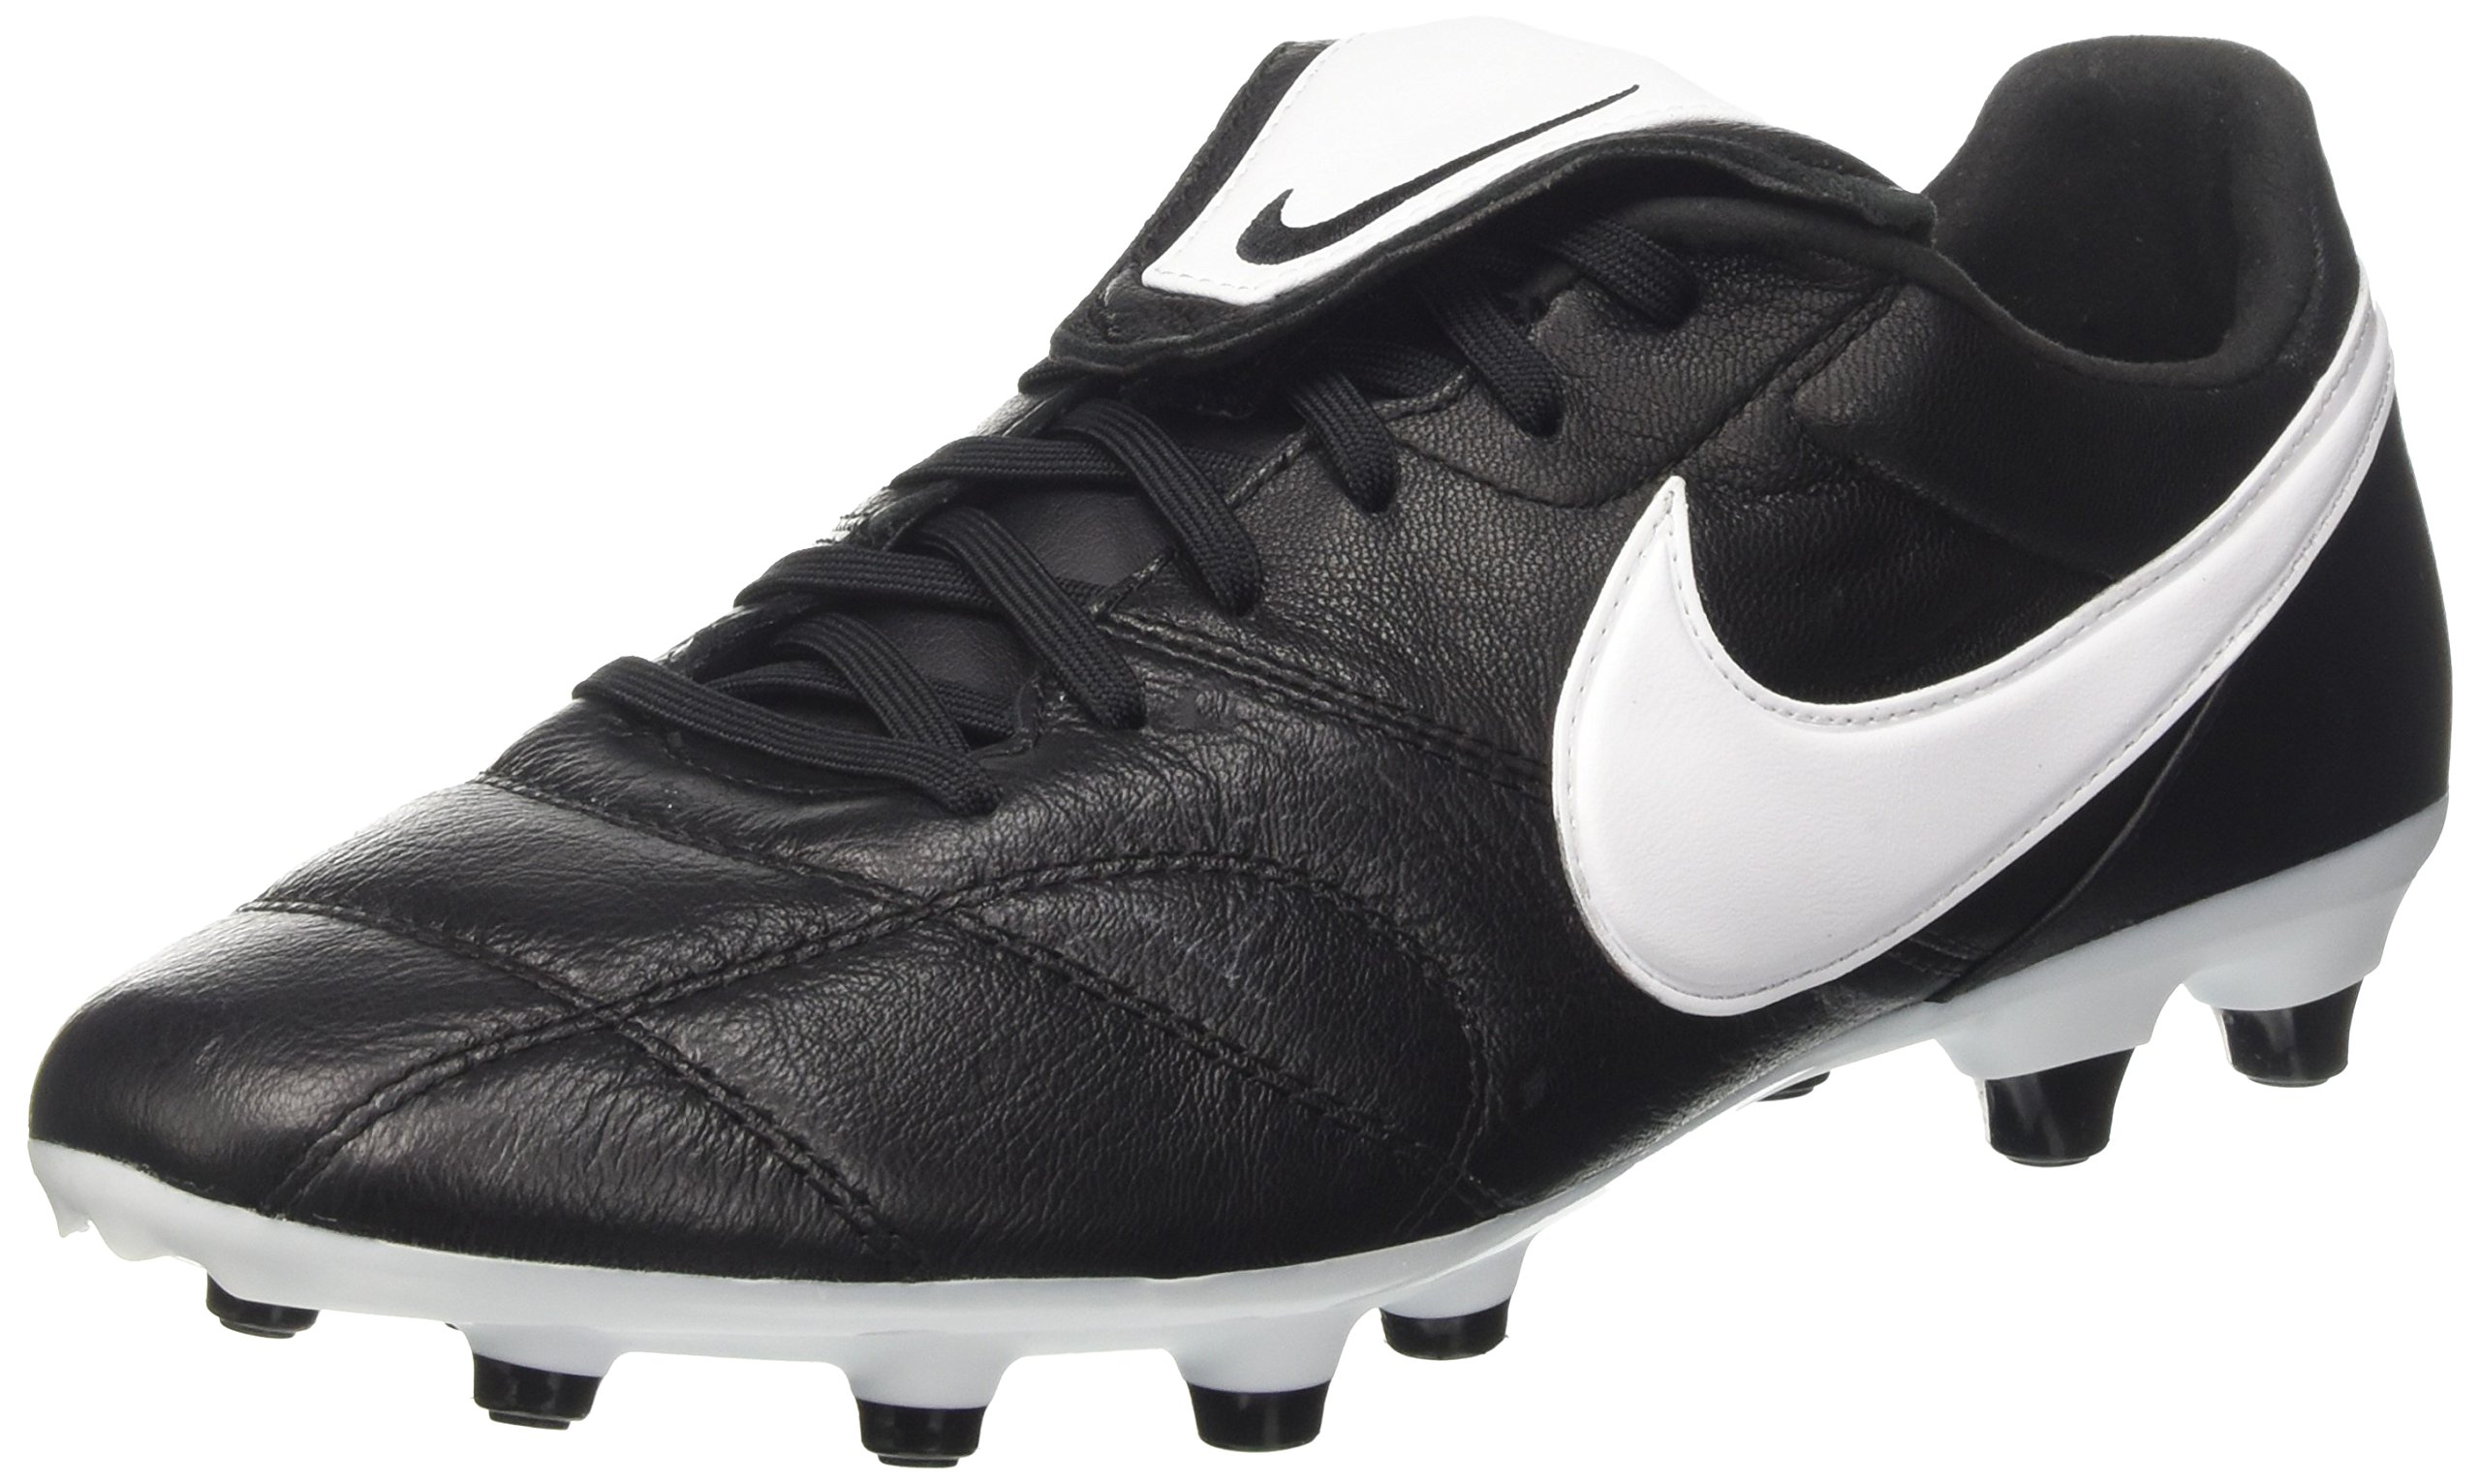 NIKE The Premier II FG 917803-001 Black/White Kangaroo Leather Men's Soccer Cleats (11 D US)